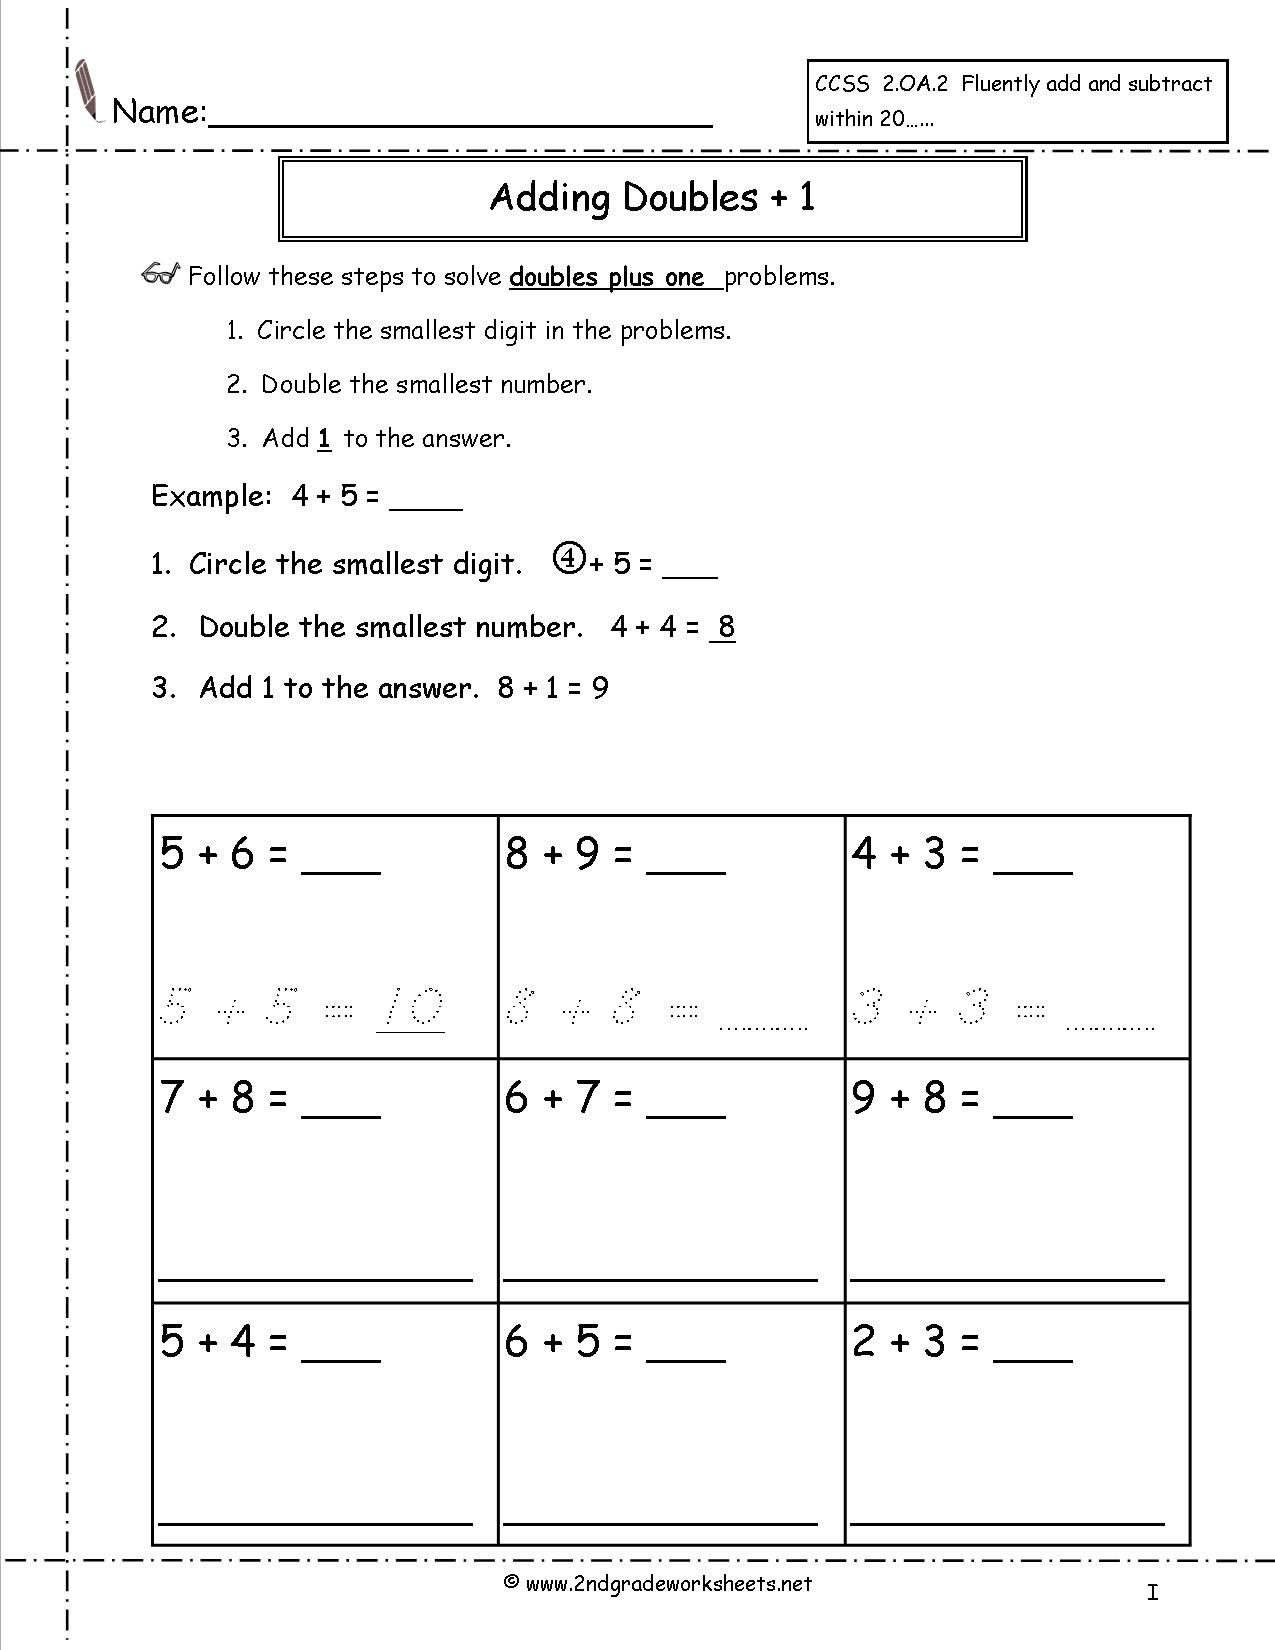 Fluency Worksheets Doubles Worksheets Doubles Plus One